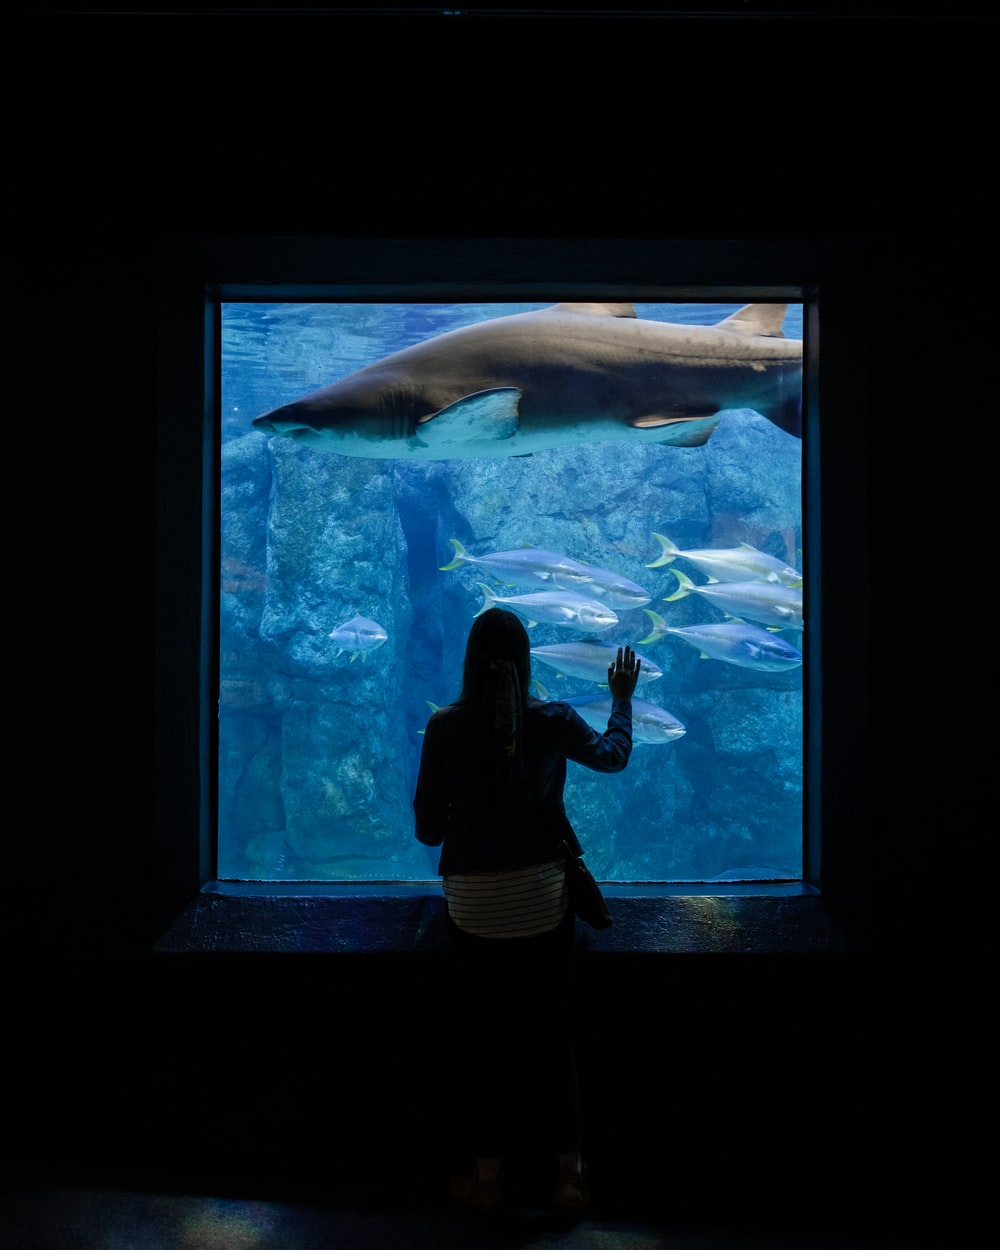 woman standing and facing aquarium window with fish and shark